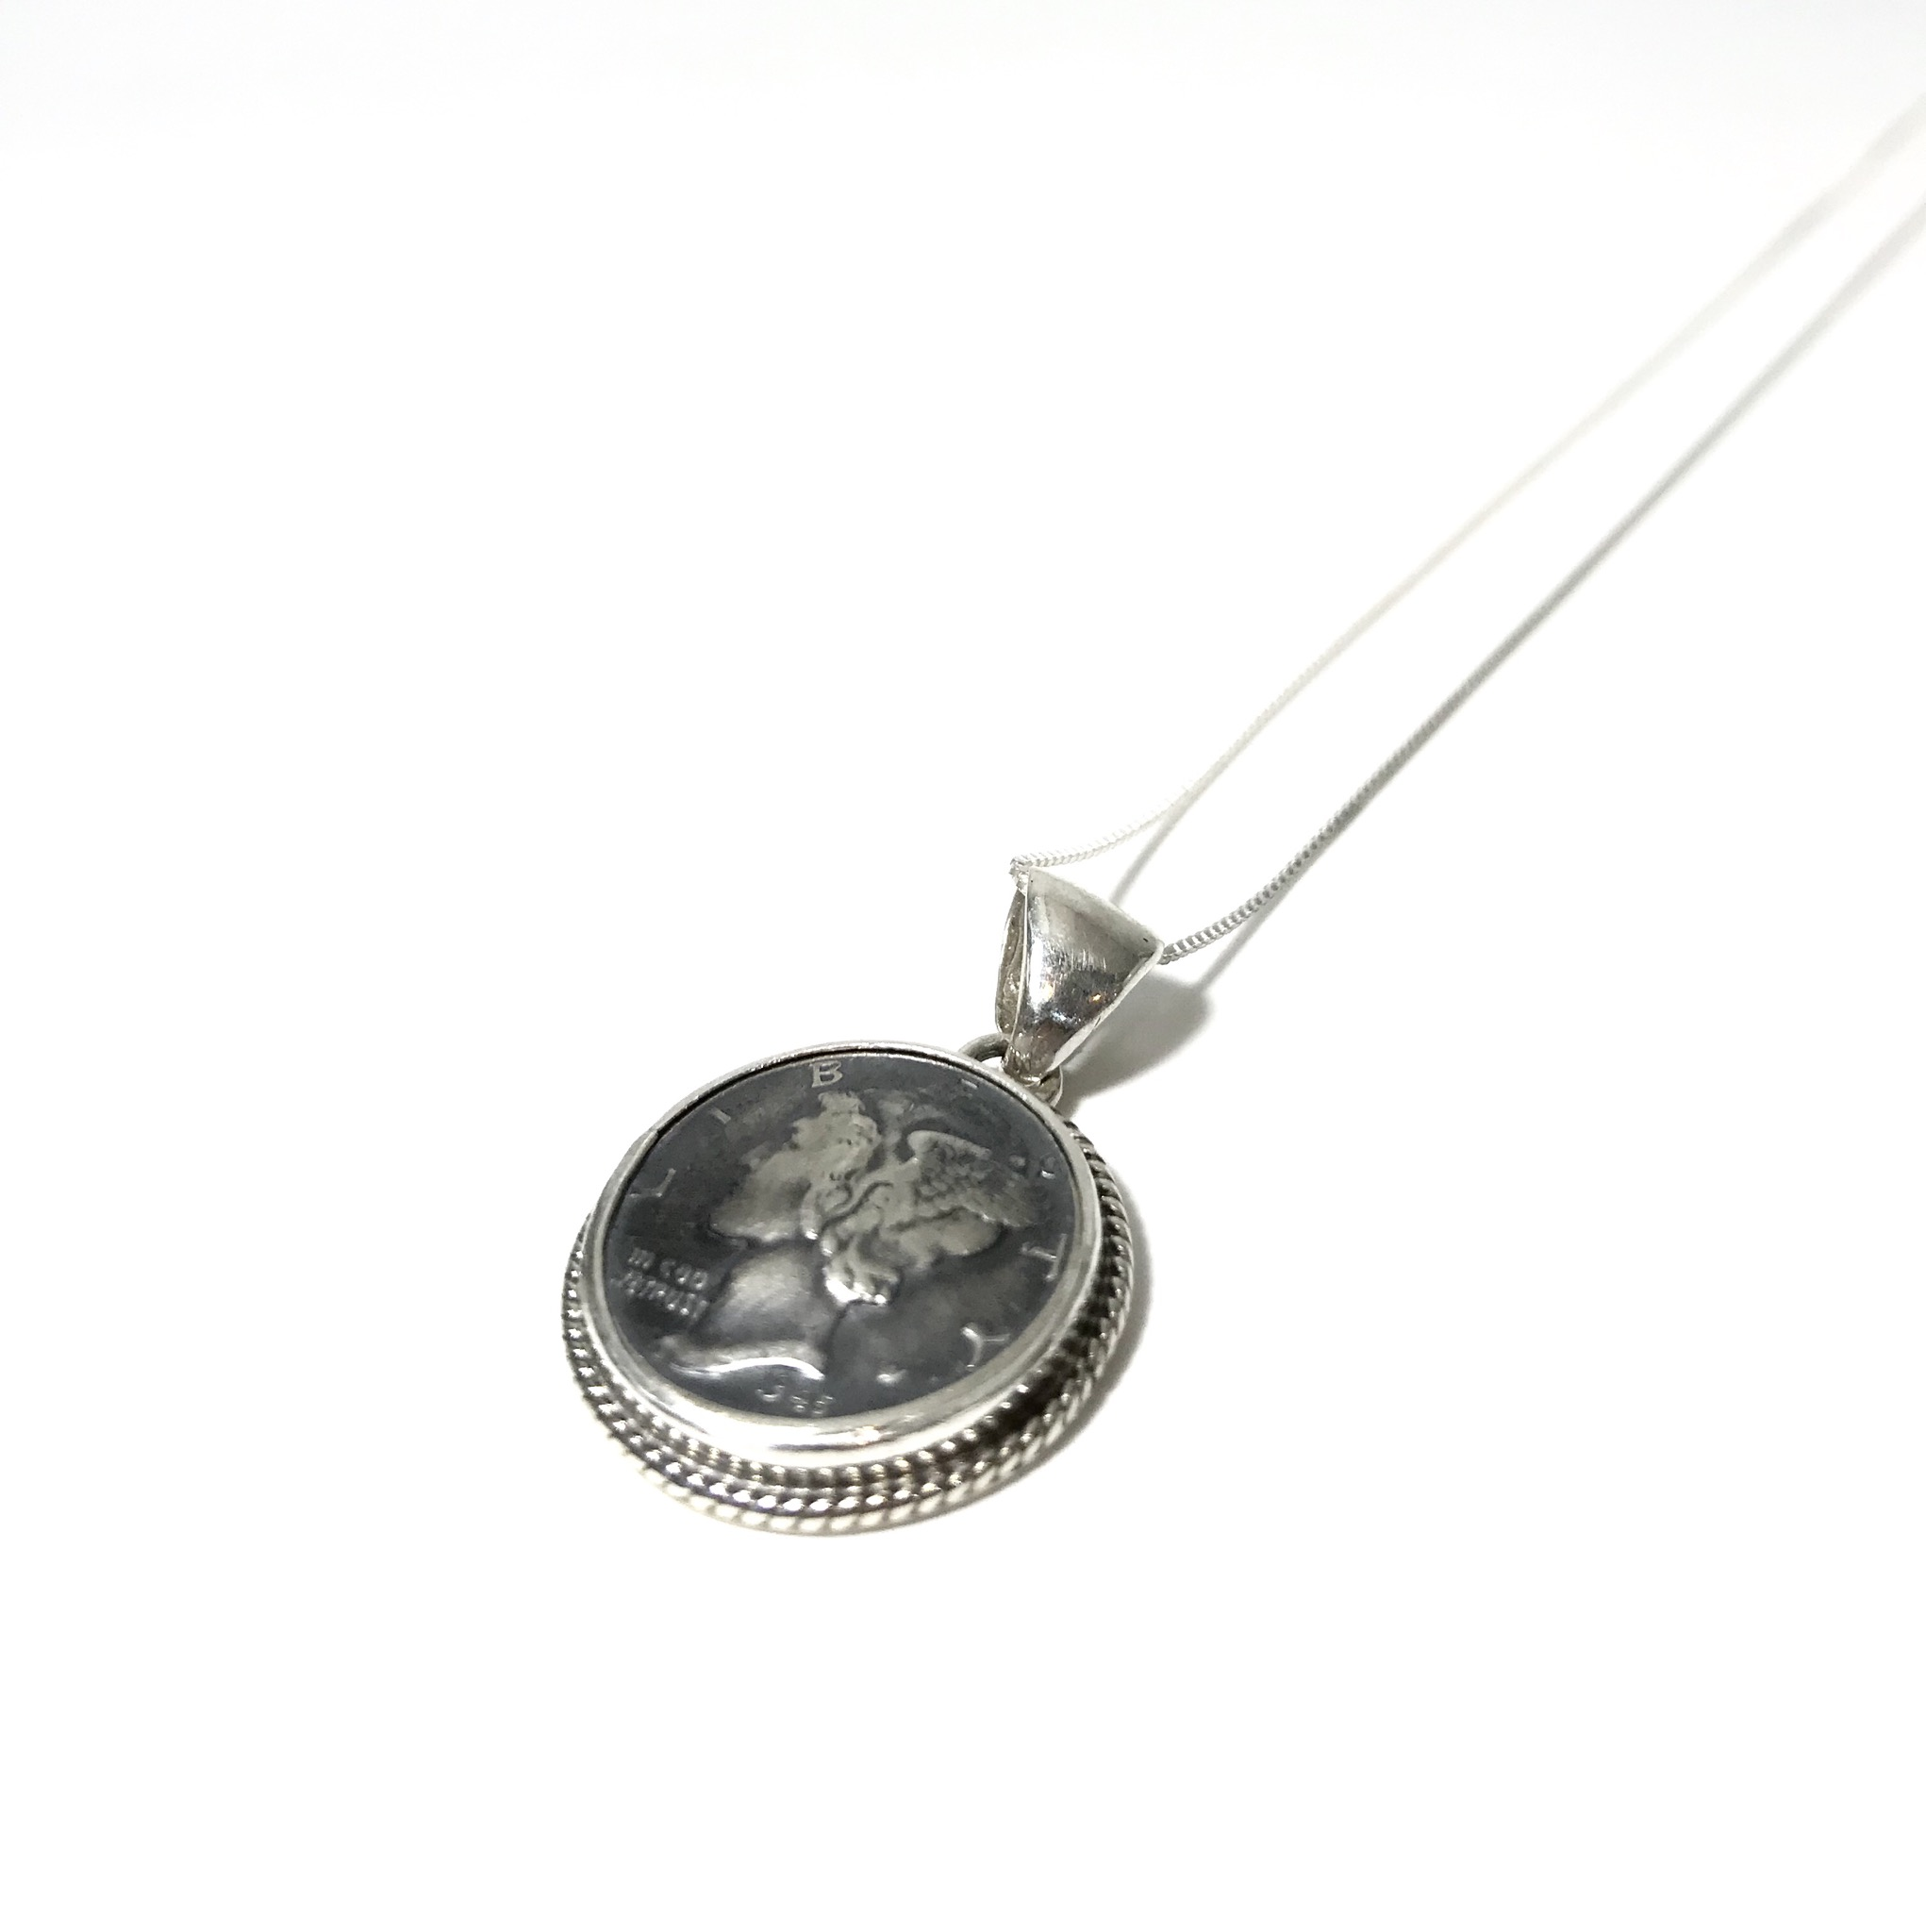 INDIAN JEWELRY  NAVAJO族 P.Skeets作 COIN NECKLESS /ナバホ族  コイン ネックレス インディアンジュエリー